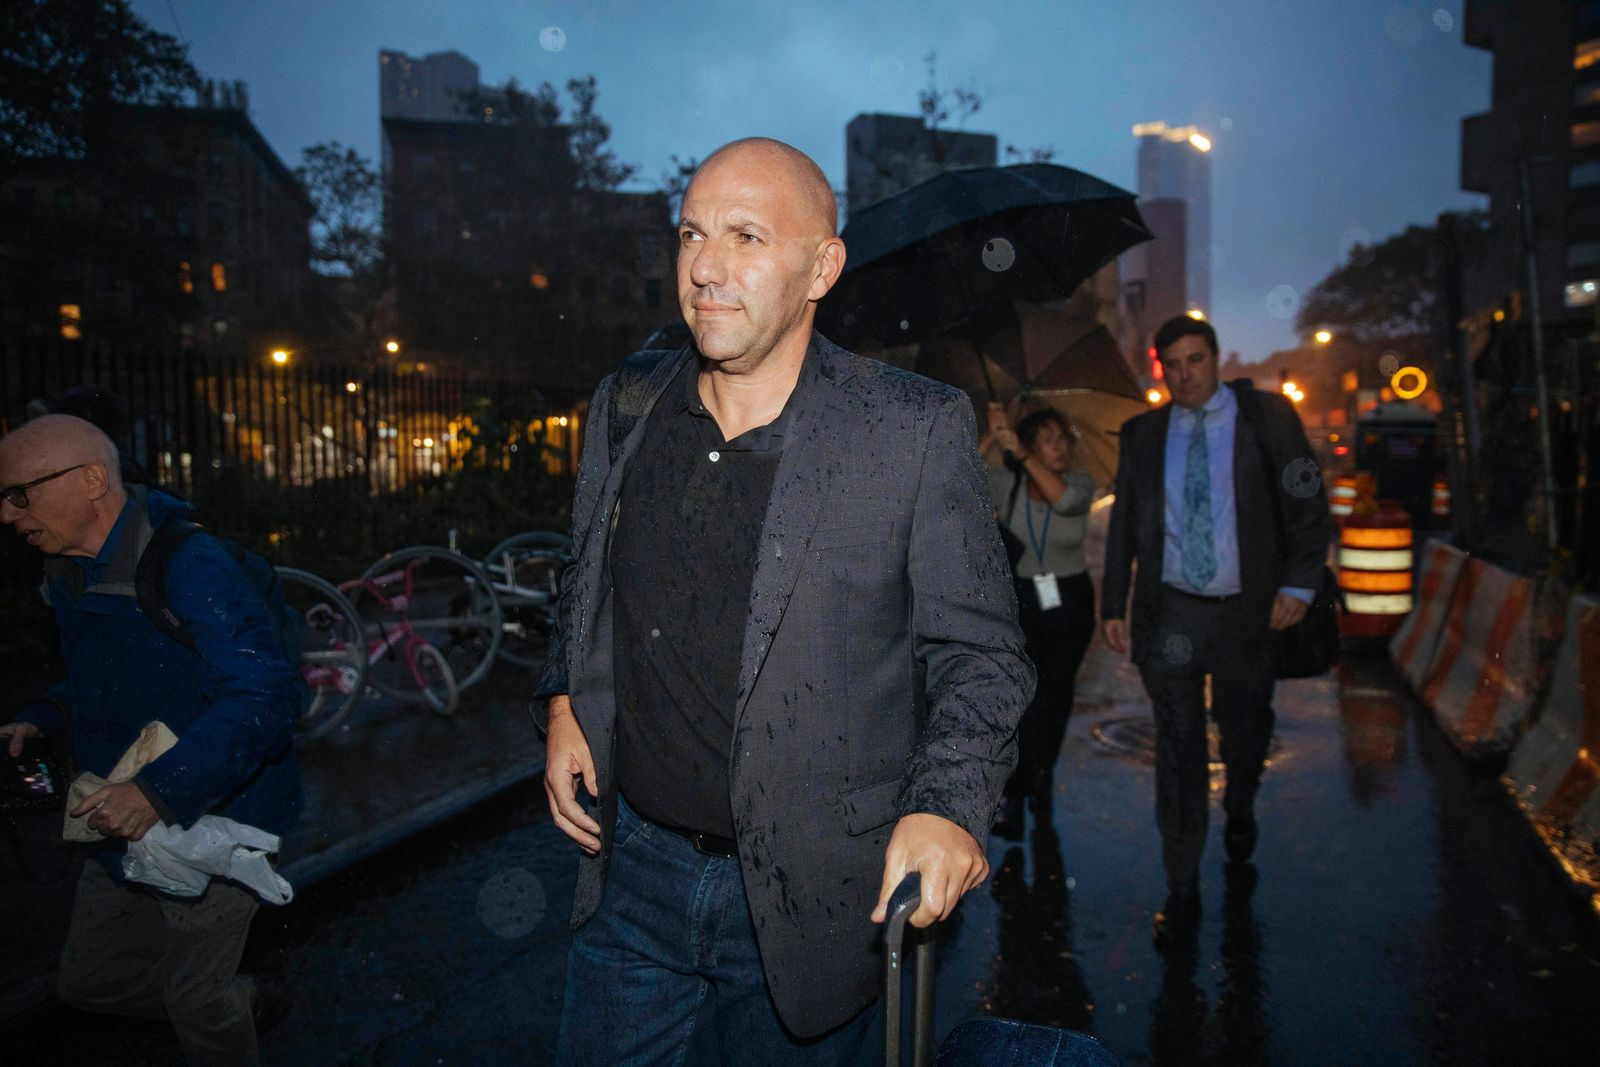 David Correia leaves Federal Court after his appearance on Wednesday, Oct. 16, 2019, in New York. Correia, a Florida man accused of conspiring with associates of Rudy Giuliani to make illegal campaign contributions made an initial court appearance Wednesday after flying to Kennedy Airport in New York City to turn himself in. (AP Photo/Kevin Hagen).